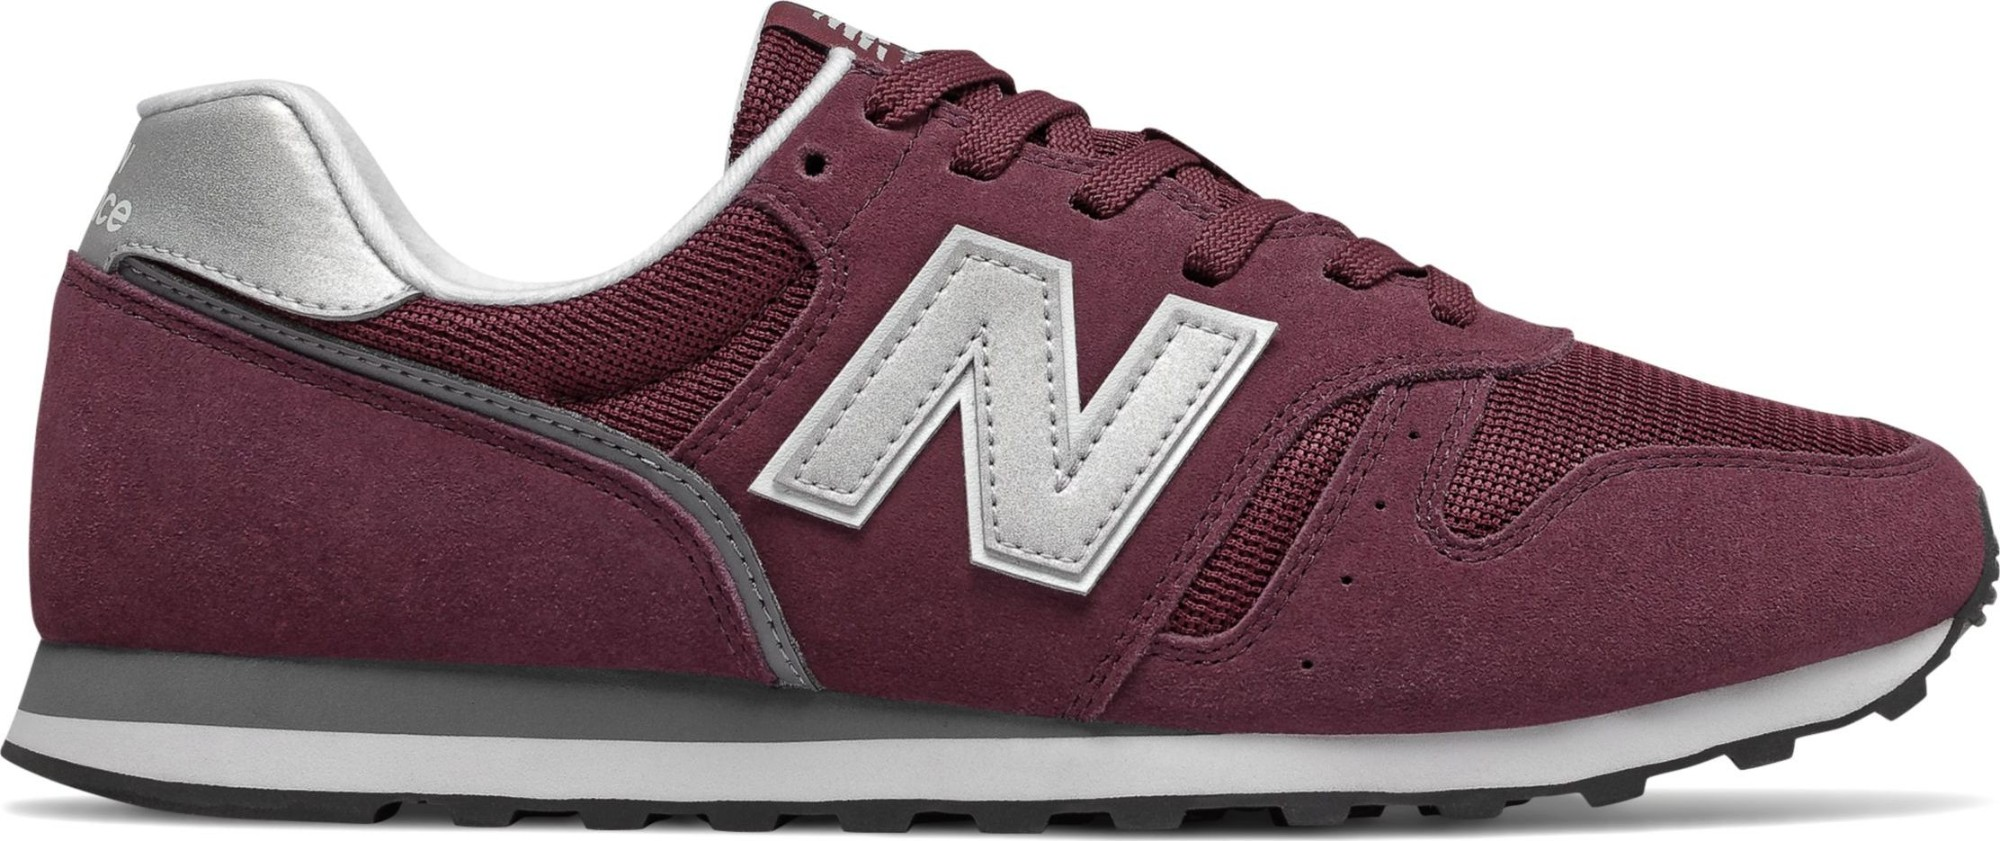 New Balance ML373 Wine 43